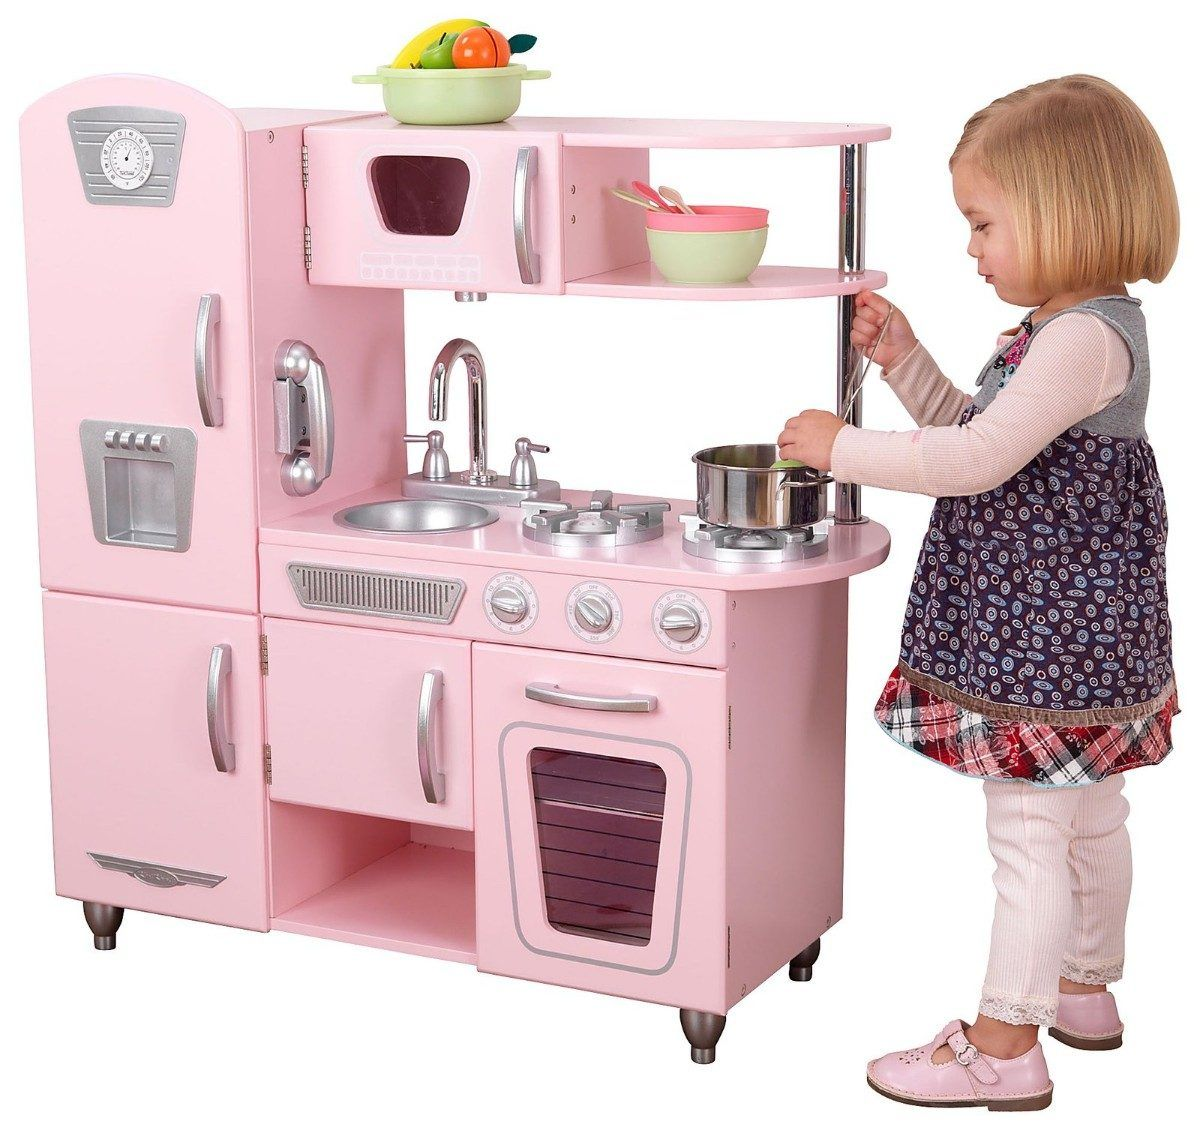 Kid Craft Retro Kitchen Cocinita Kidkraft Juguete Cocina Para Nia As Rosa Ideas Para